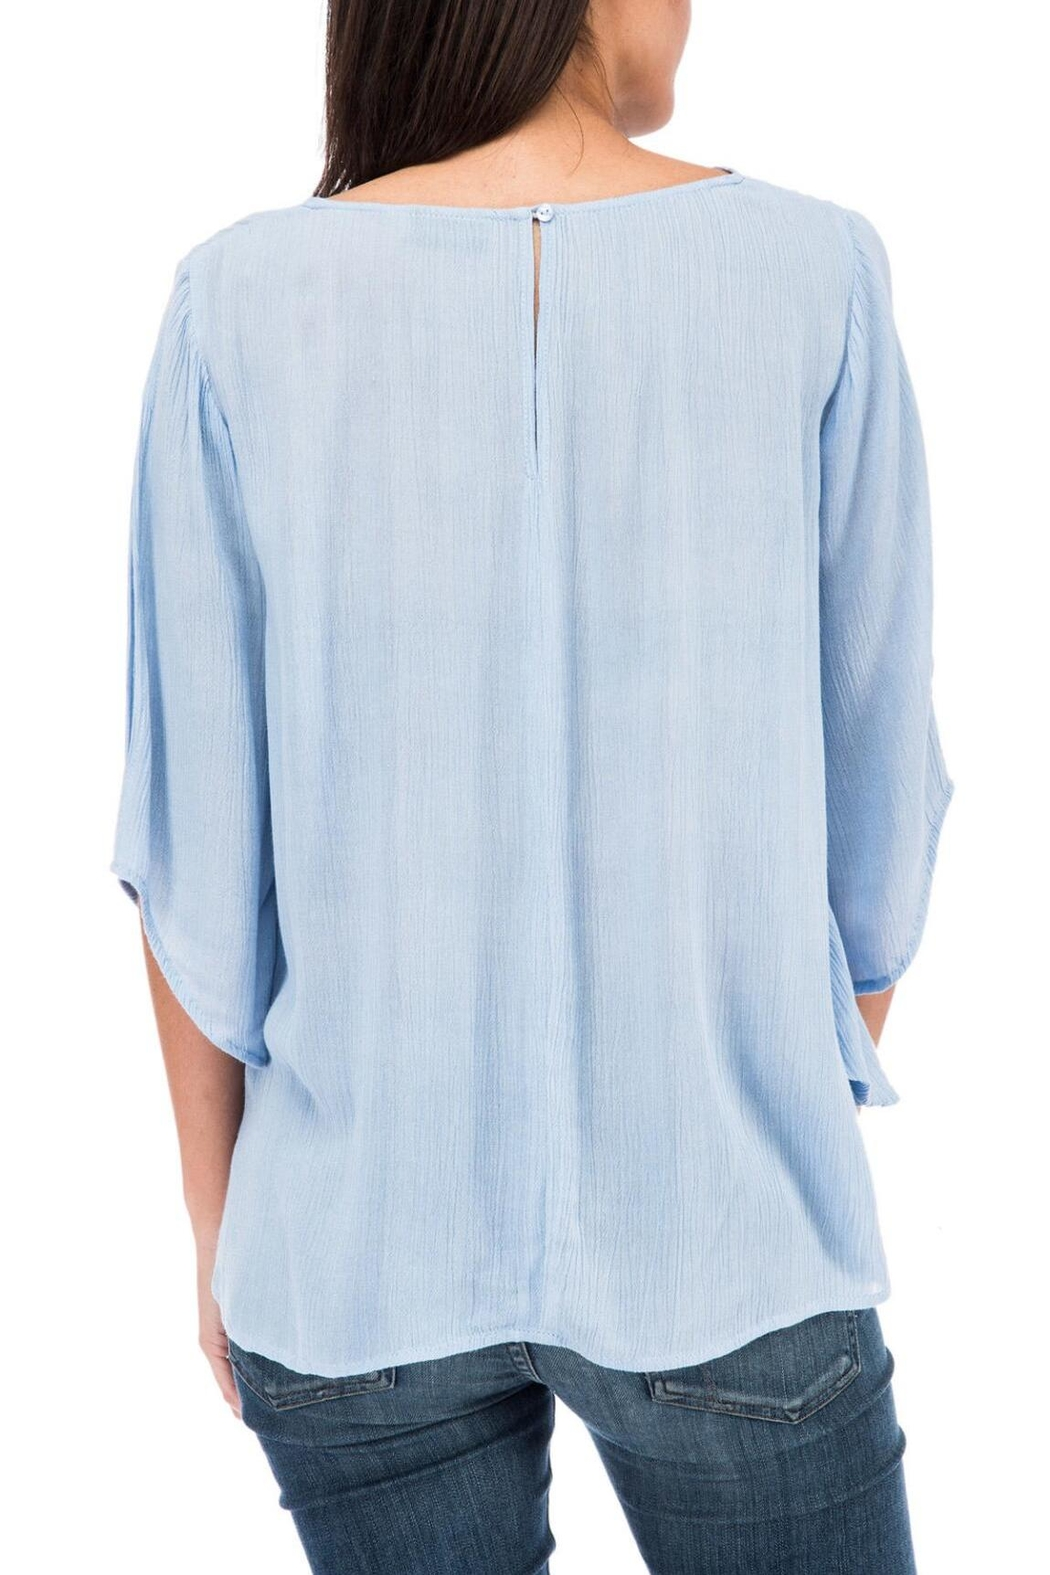 Bobeau Tie Front Blouse - Side Cropped Image